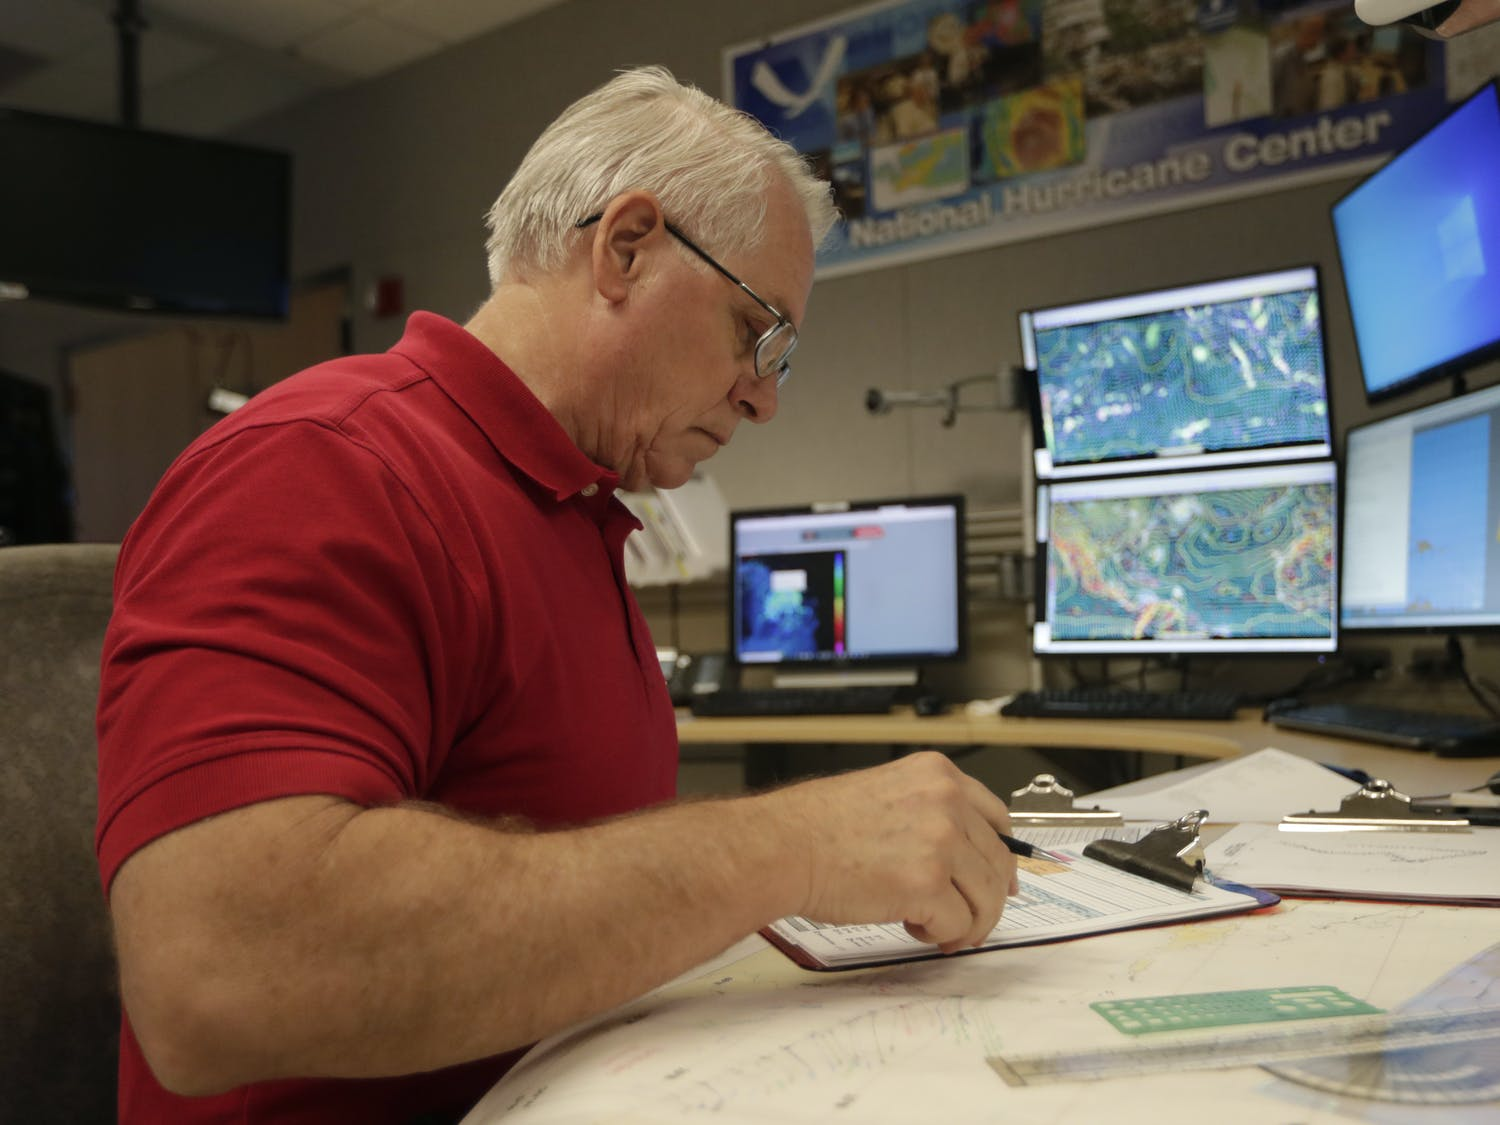 Senior hurricane specialist Stacy Stewart monitors the progress of Tropical Storm Dorian at the National Hurricane Center, Tuesday, in Miami.